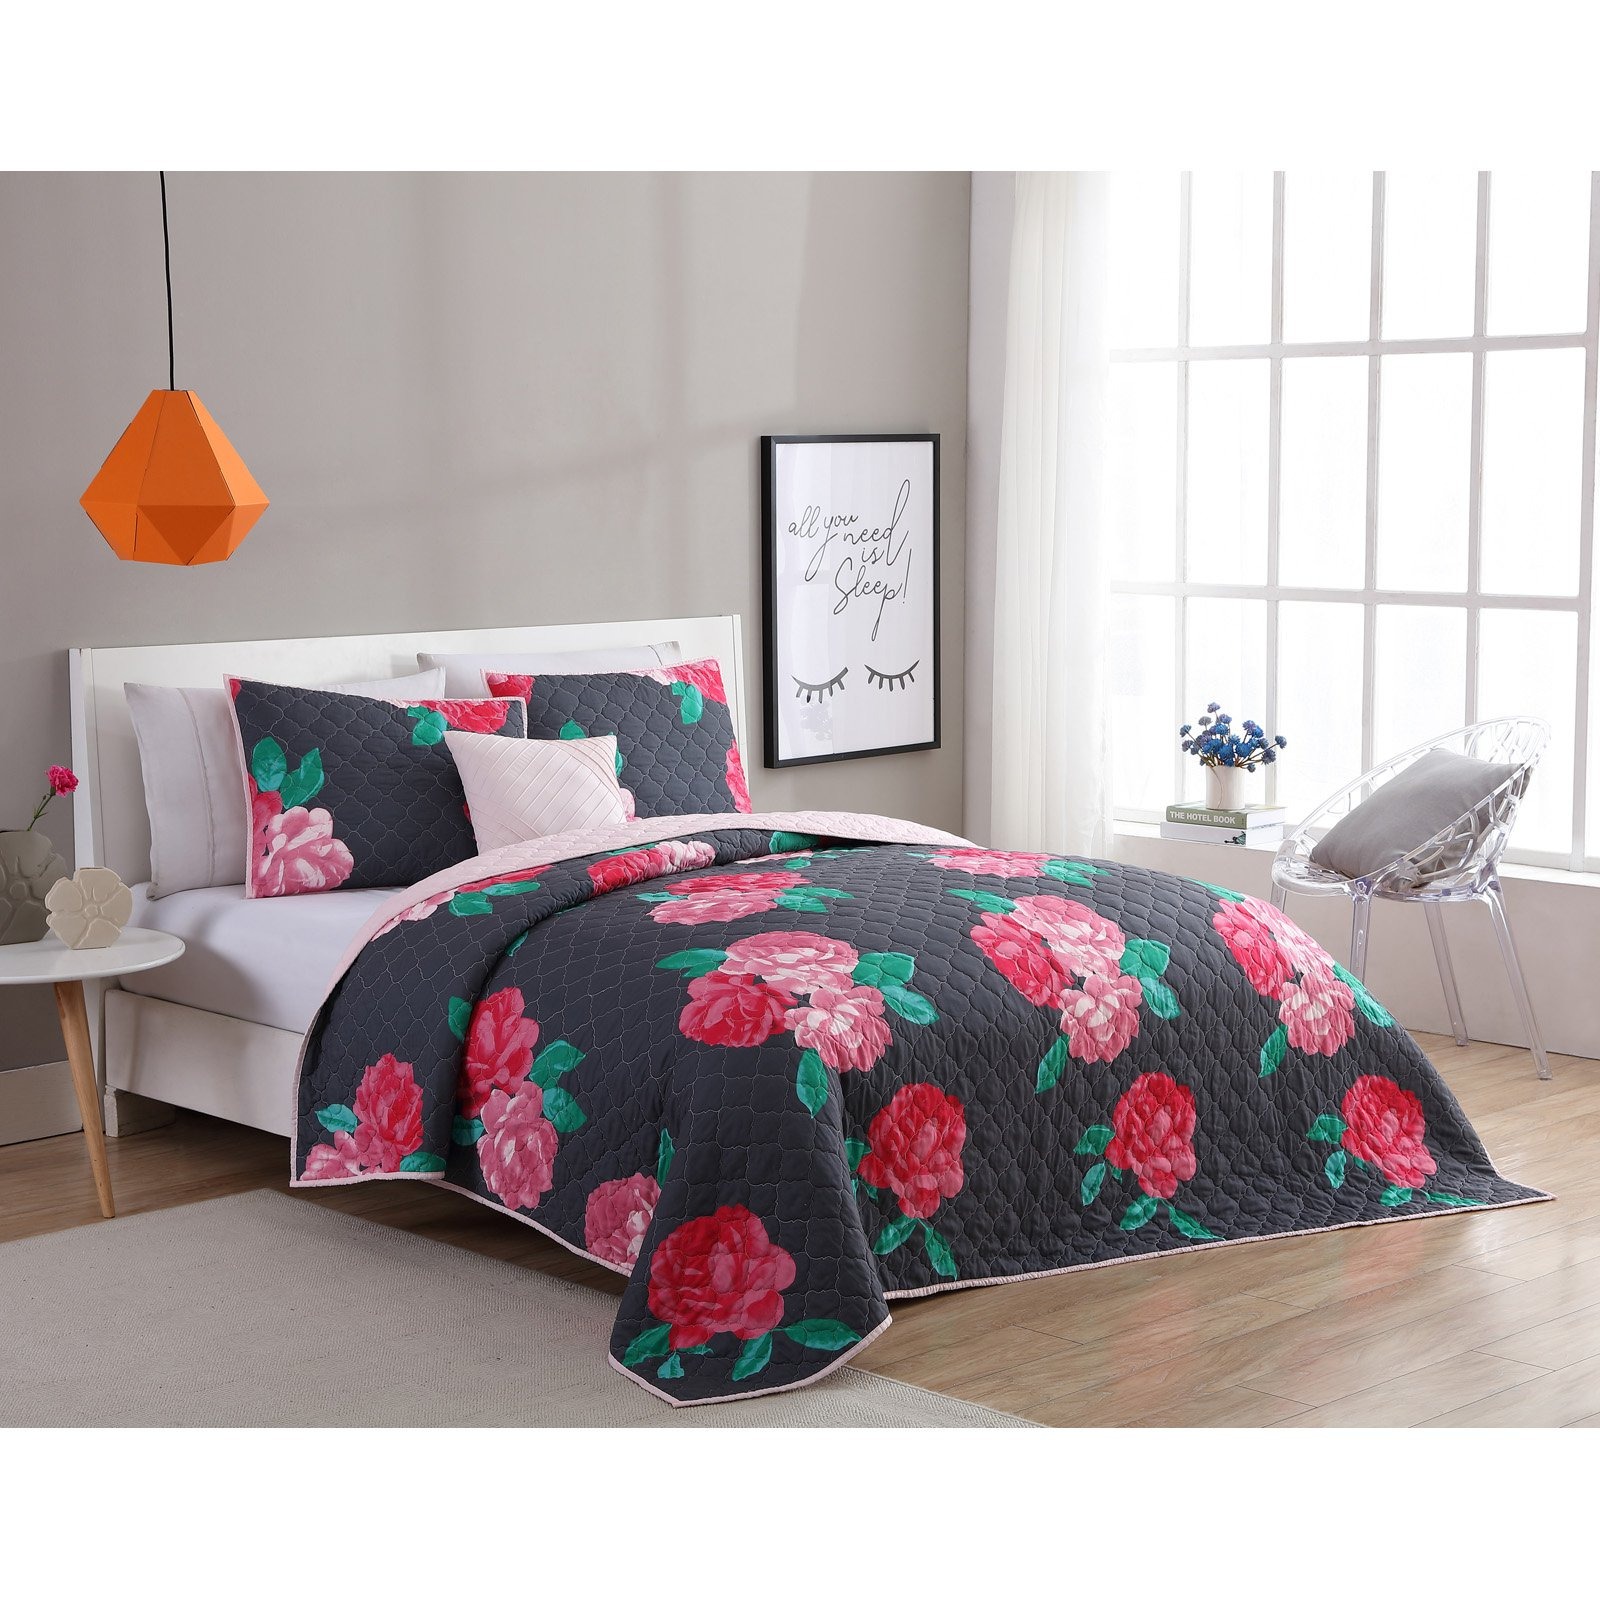 VCNY Home Charcoal/Rose RoseMary Floral 3/4 Piece Quilt Bedding Set, Shams Included